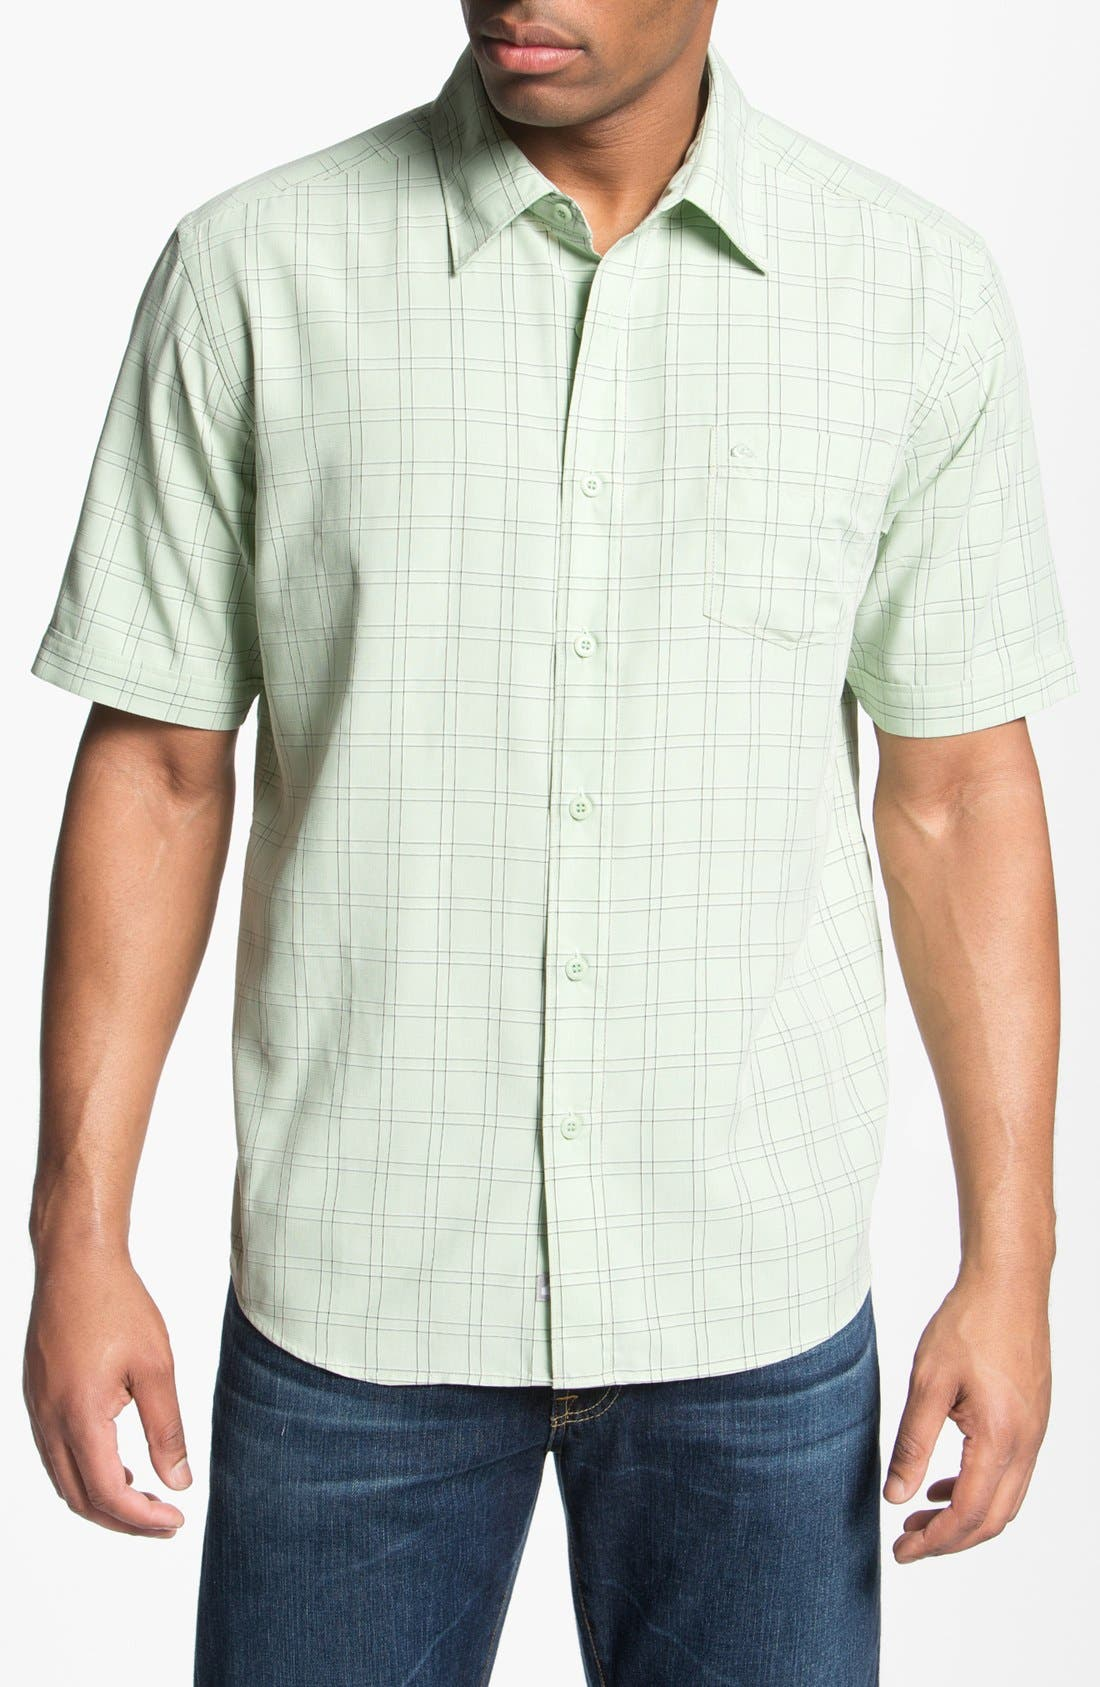 Main Image - Quiksilver Waterman Collection 'Kendalls Right' Short Sleeve Sport Shirt